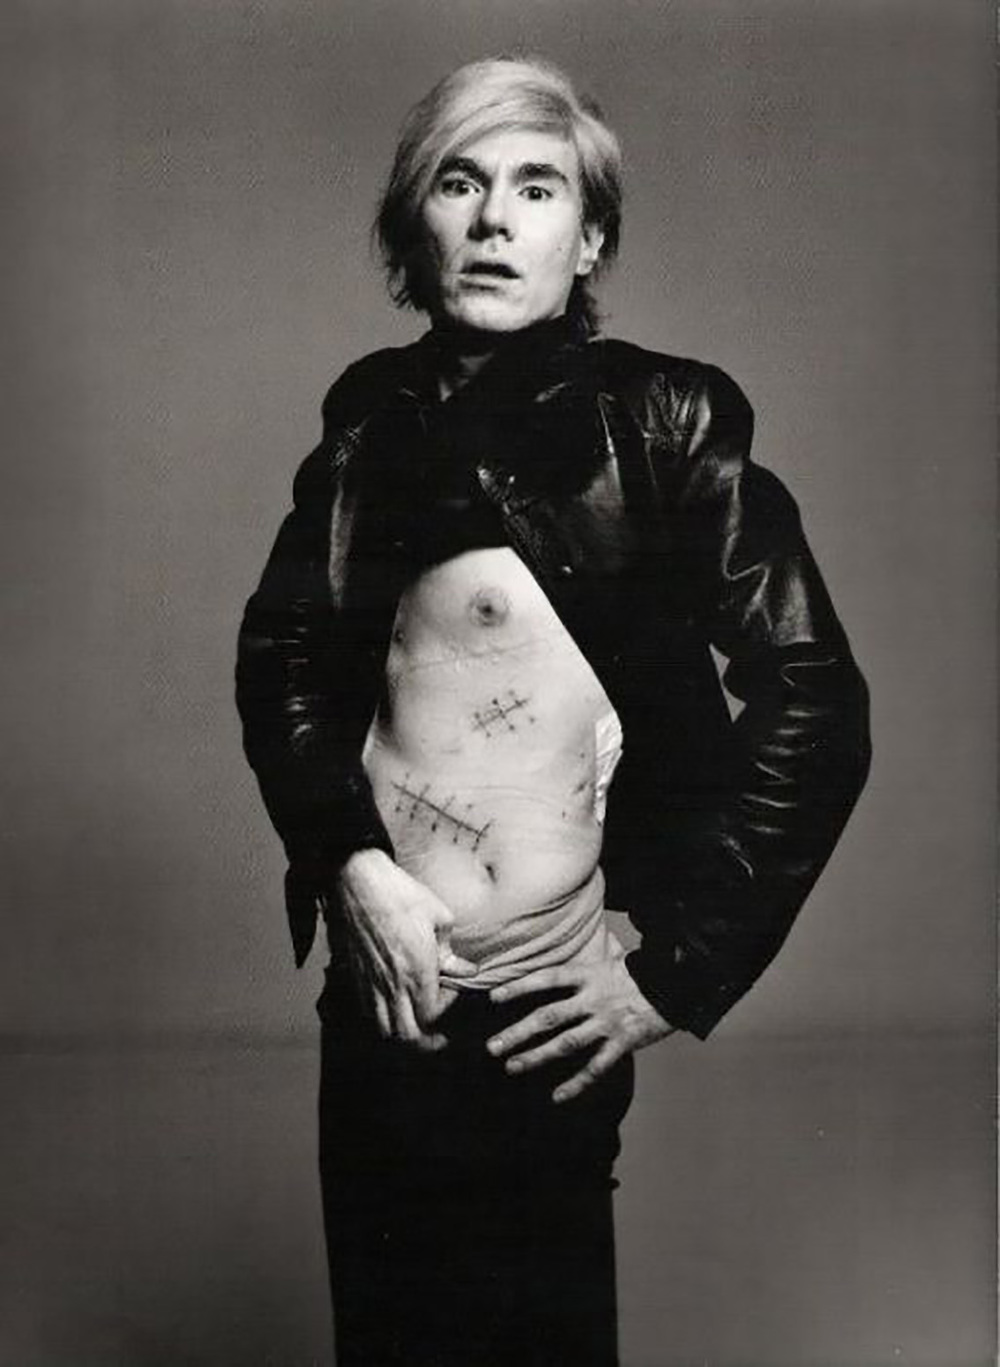 Richard-Avedon-12_Andy-Warhol.jpg